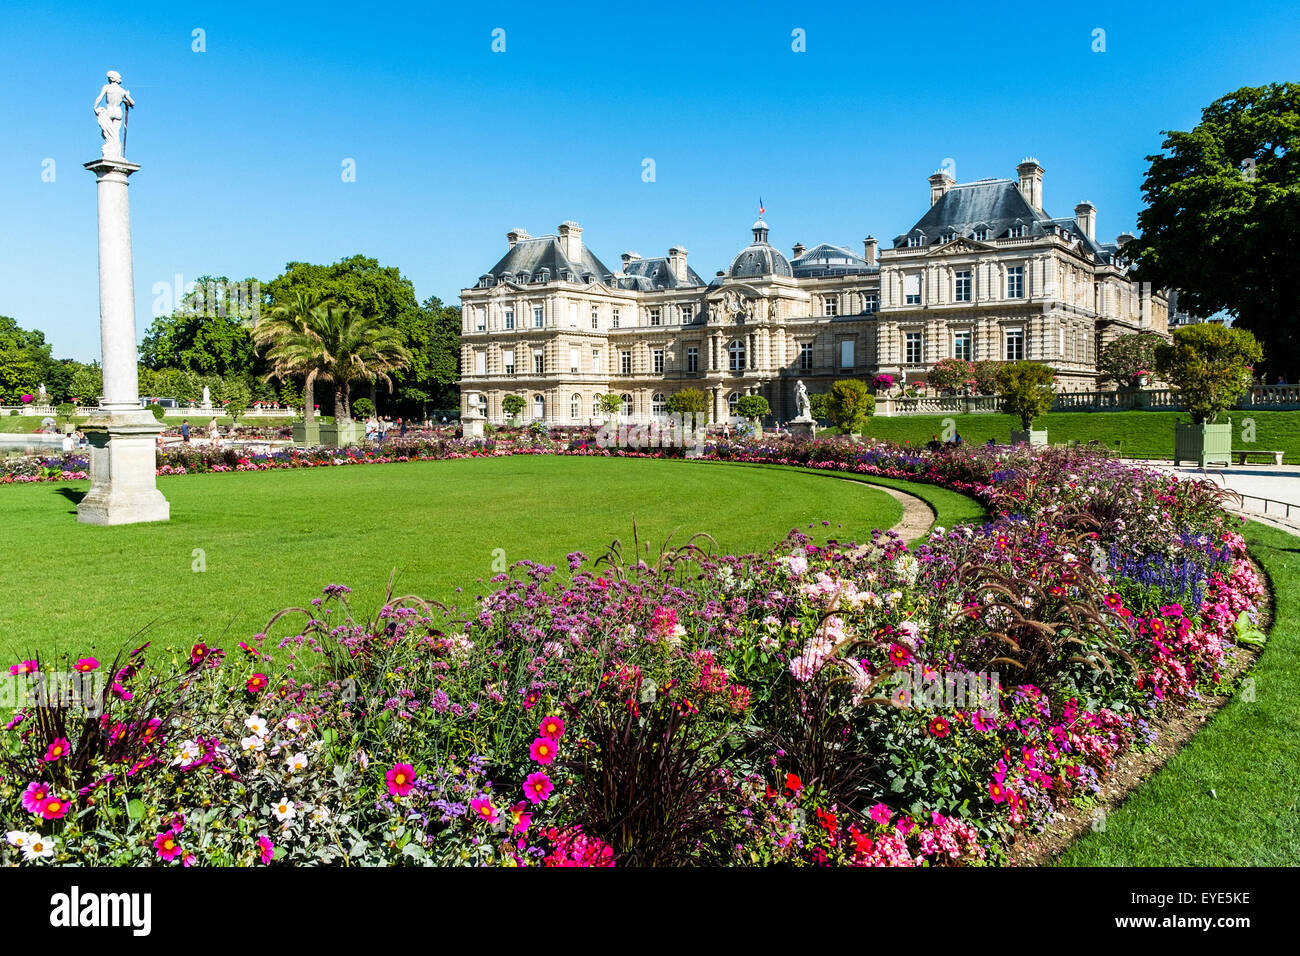 Le Jardin Du Luxembourg Gardens Paris France Stock Photo